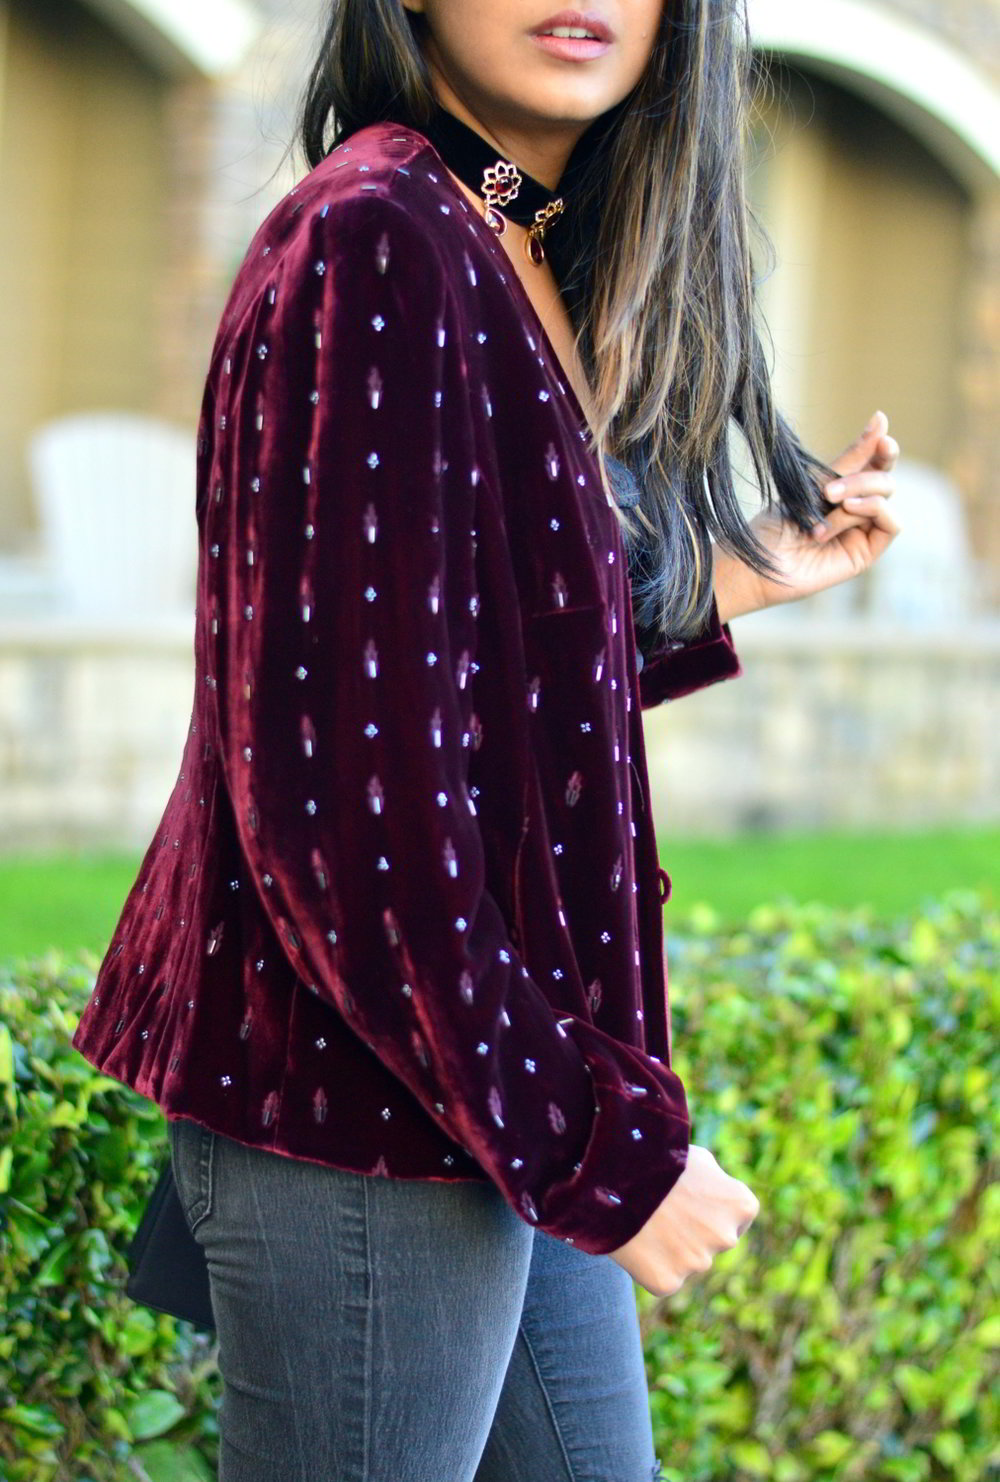 velvet-embellished-blazer-holiday-party-style-burgundy-black-blogger-outfit 5